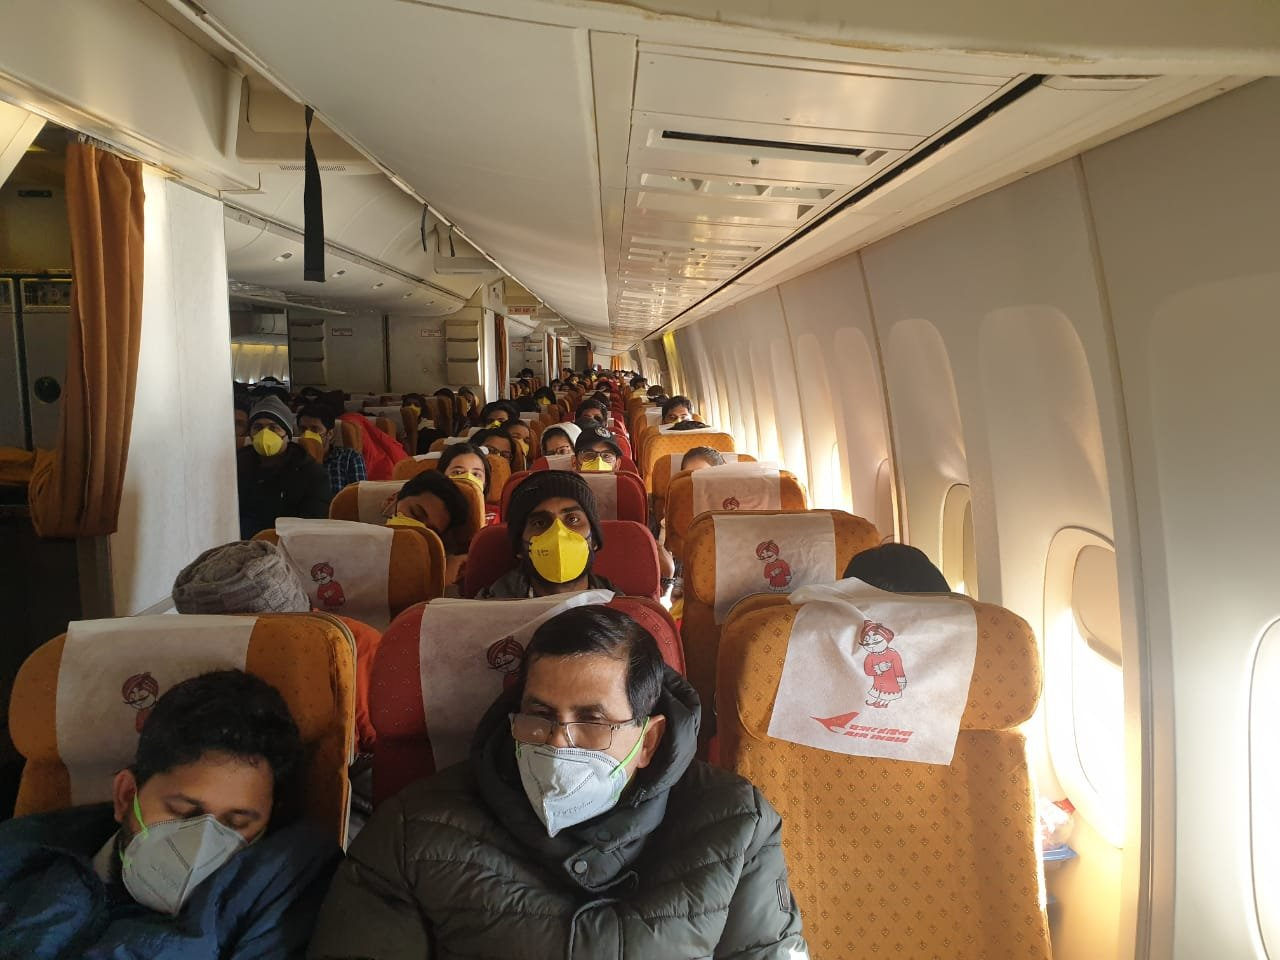 Scheduled international passenger flights have been suspended in India since March 25 due to the coronavirus pandemic.